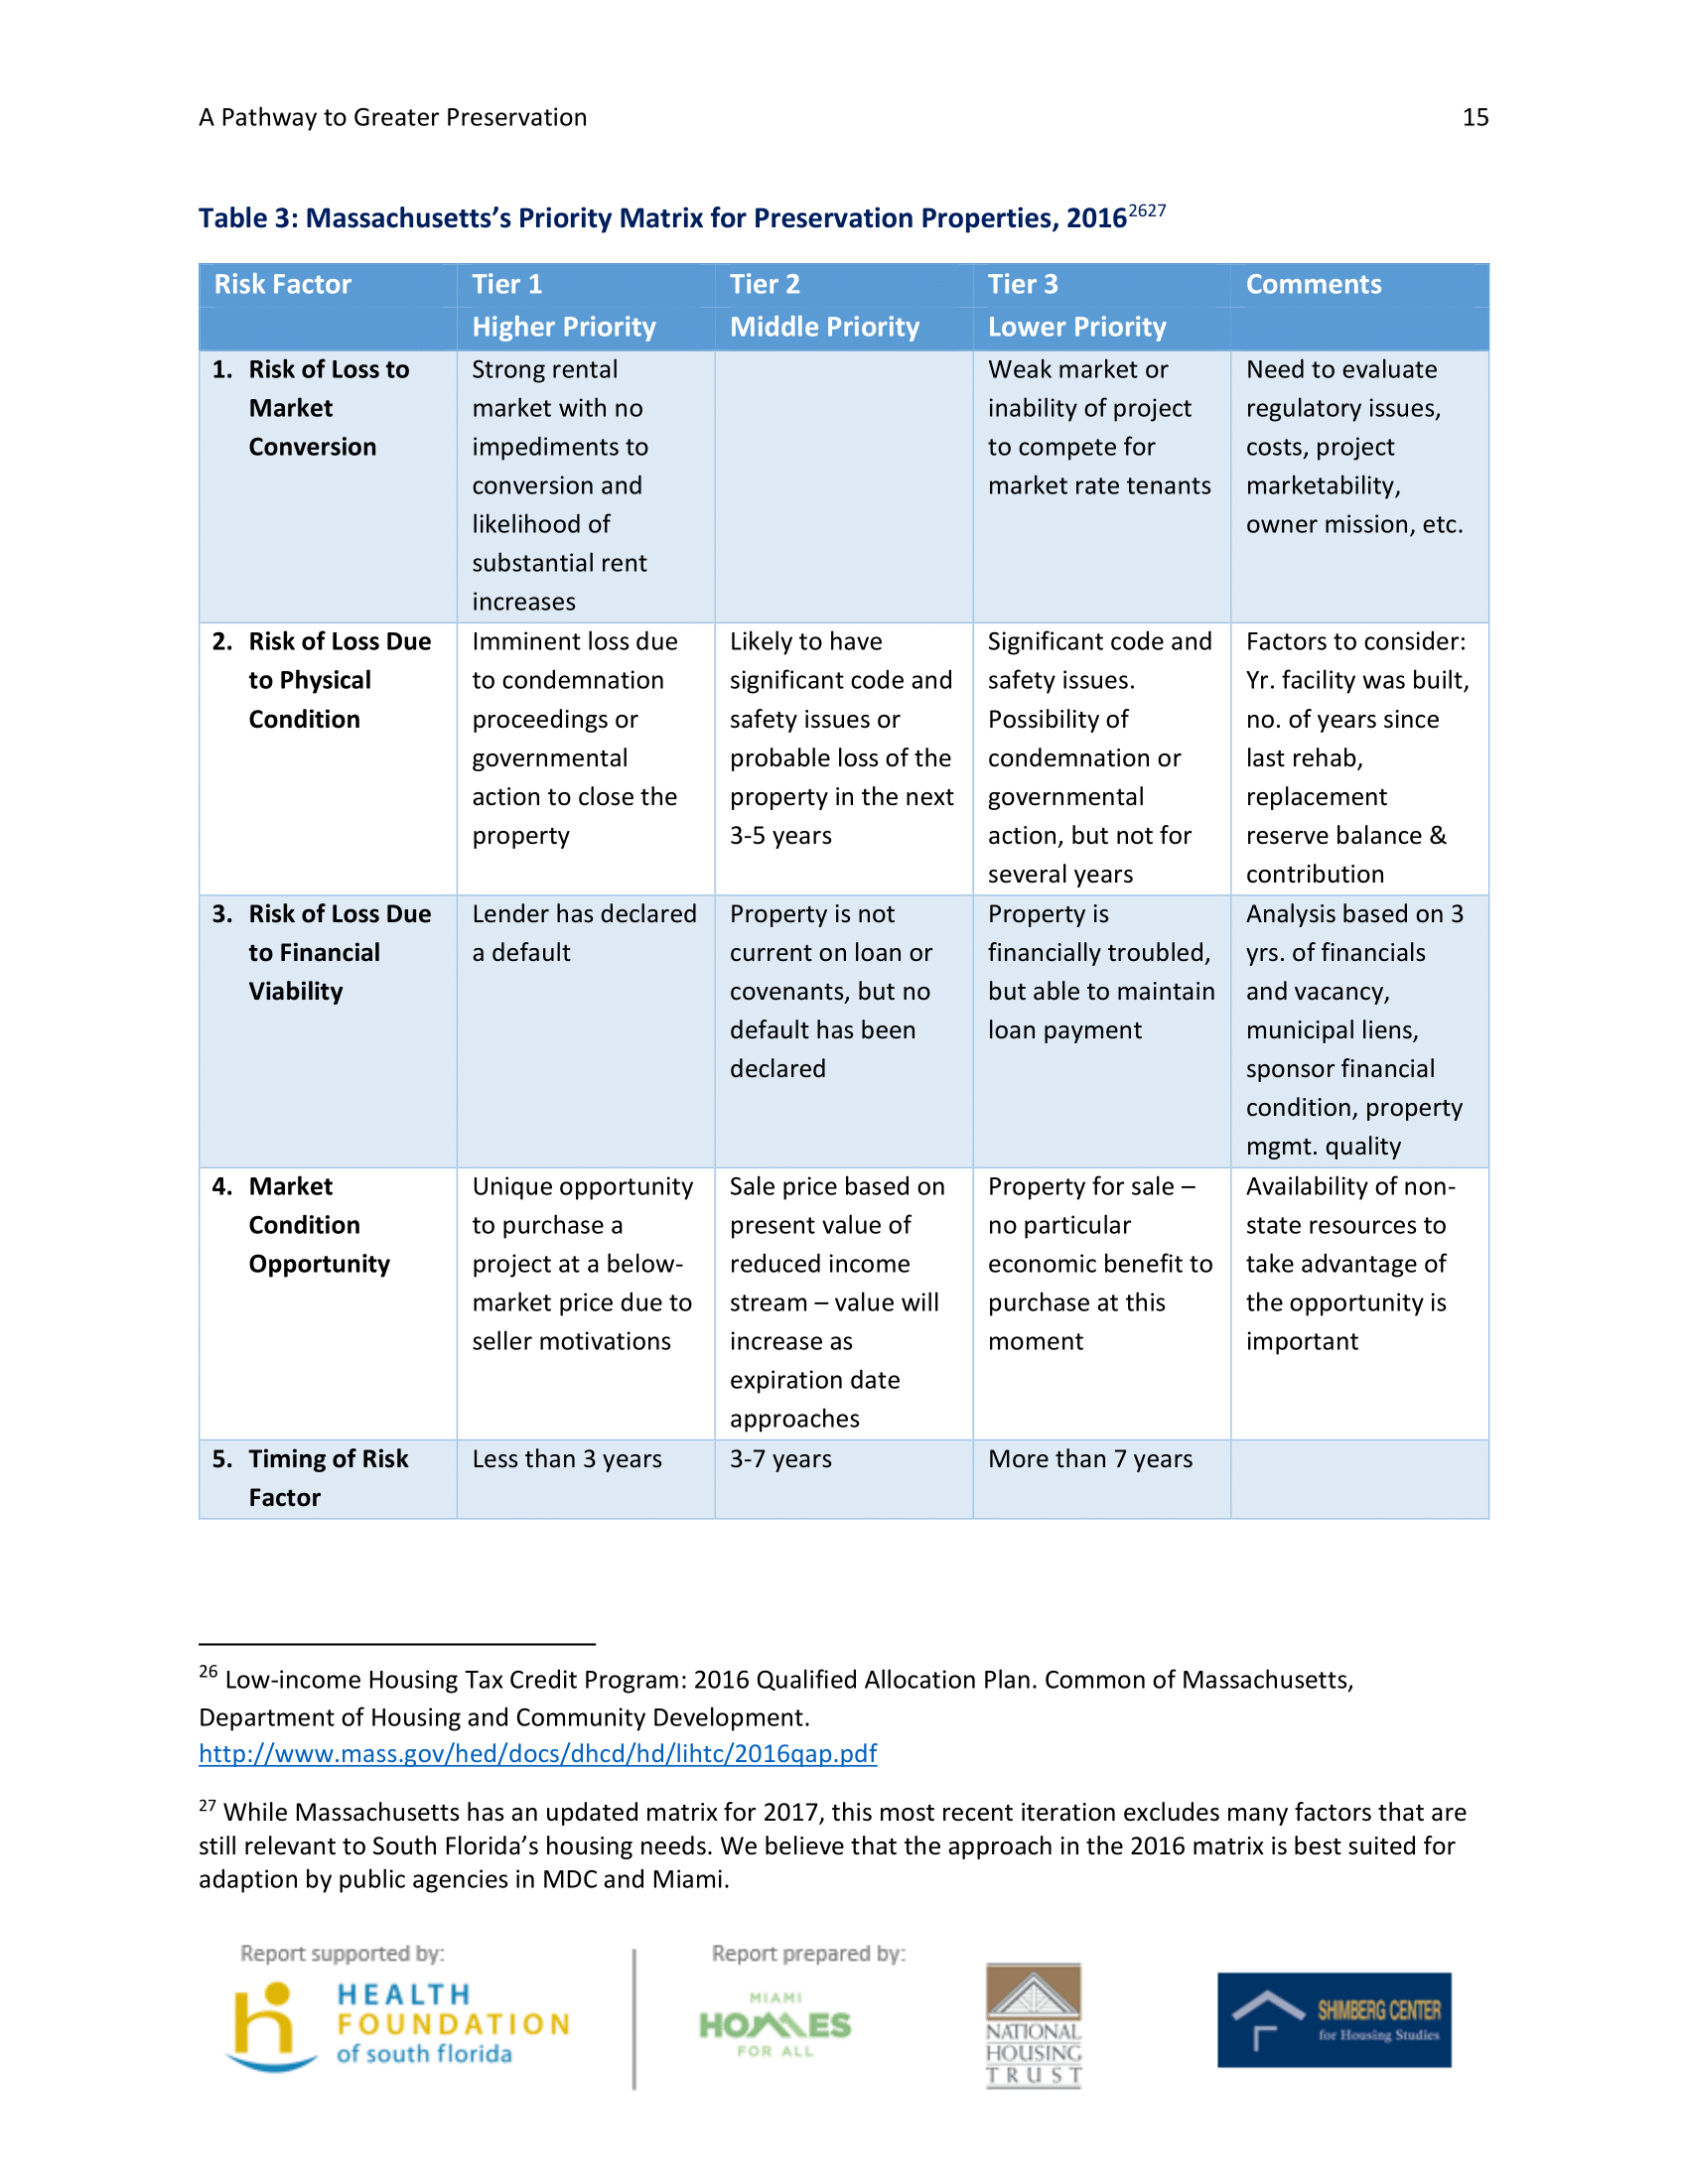 A Pathway to Greater Preservation - February 2018-23.png